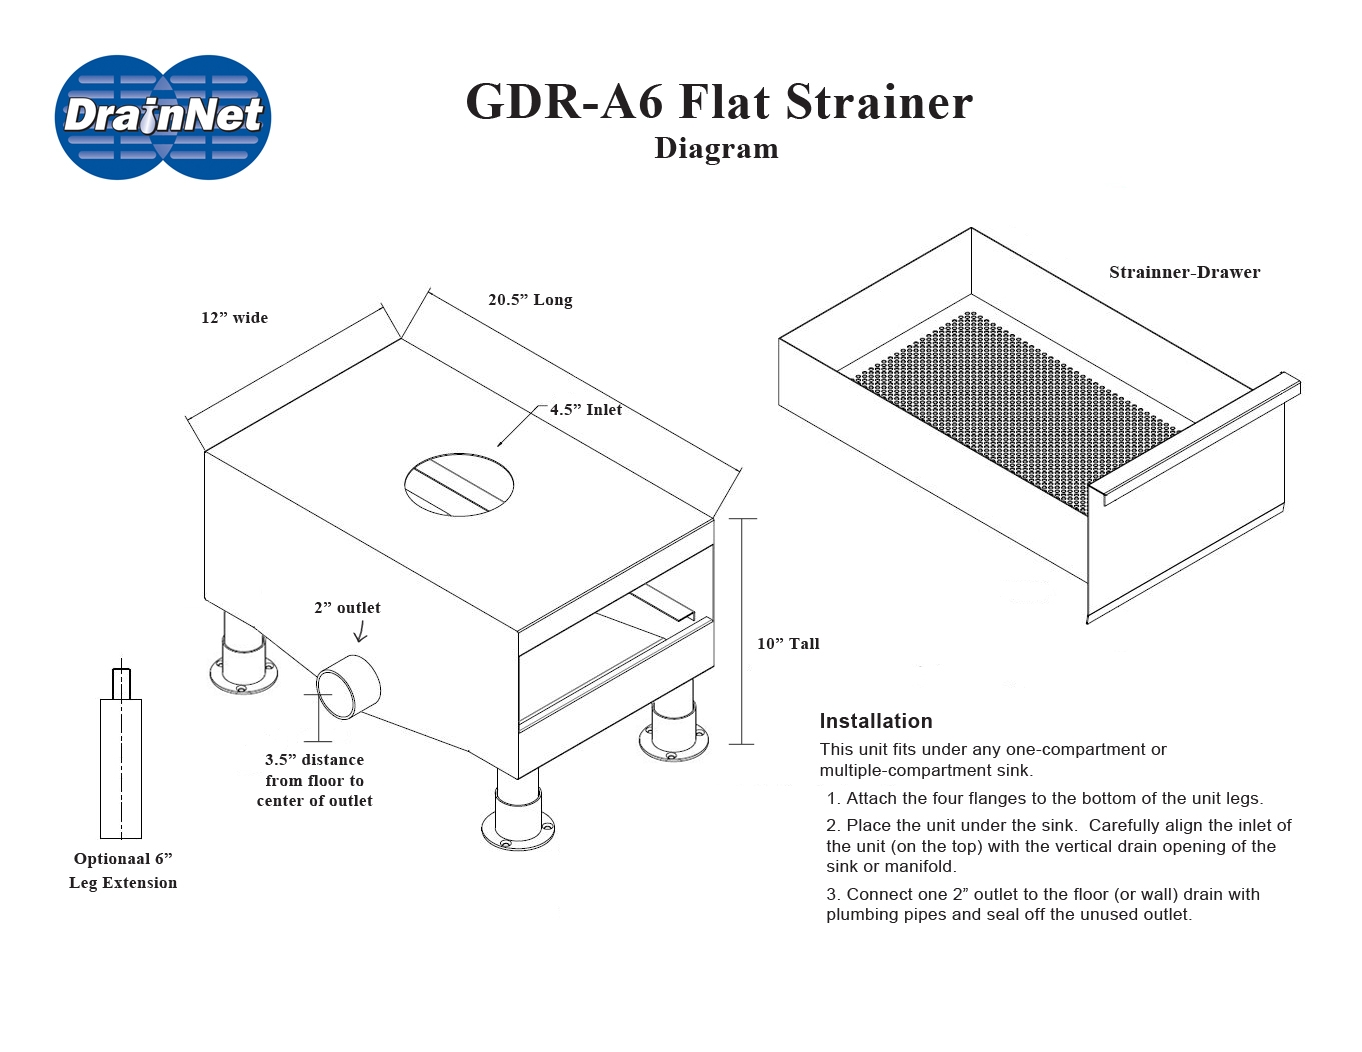 A6 Flat Strainer For Under Kitchen Sink Wet Waste Removal Similar Automatic Faucet Wiring Diagrams Gdru Step 3 And 4 Diagram Drain Net 2016